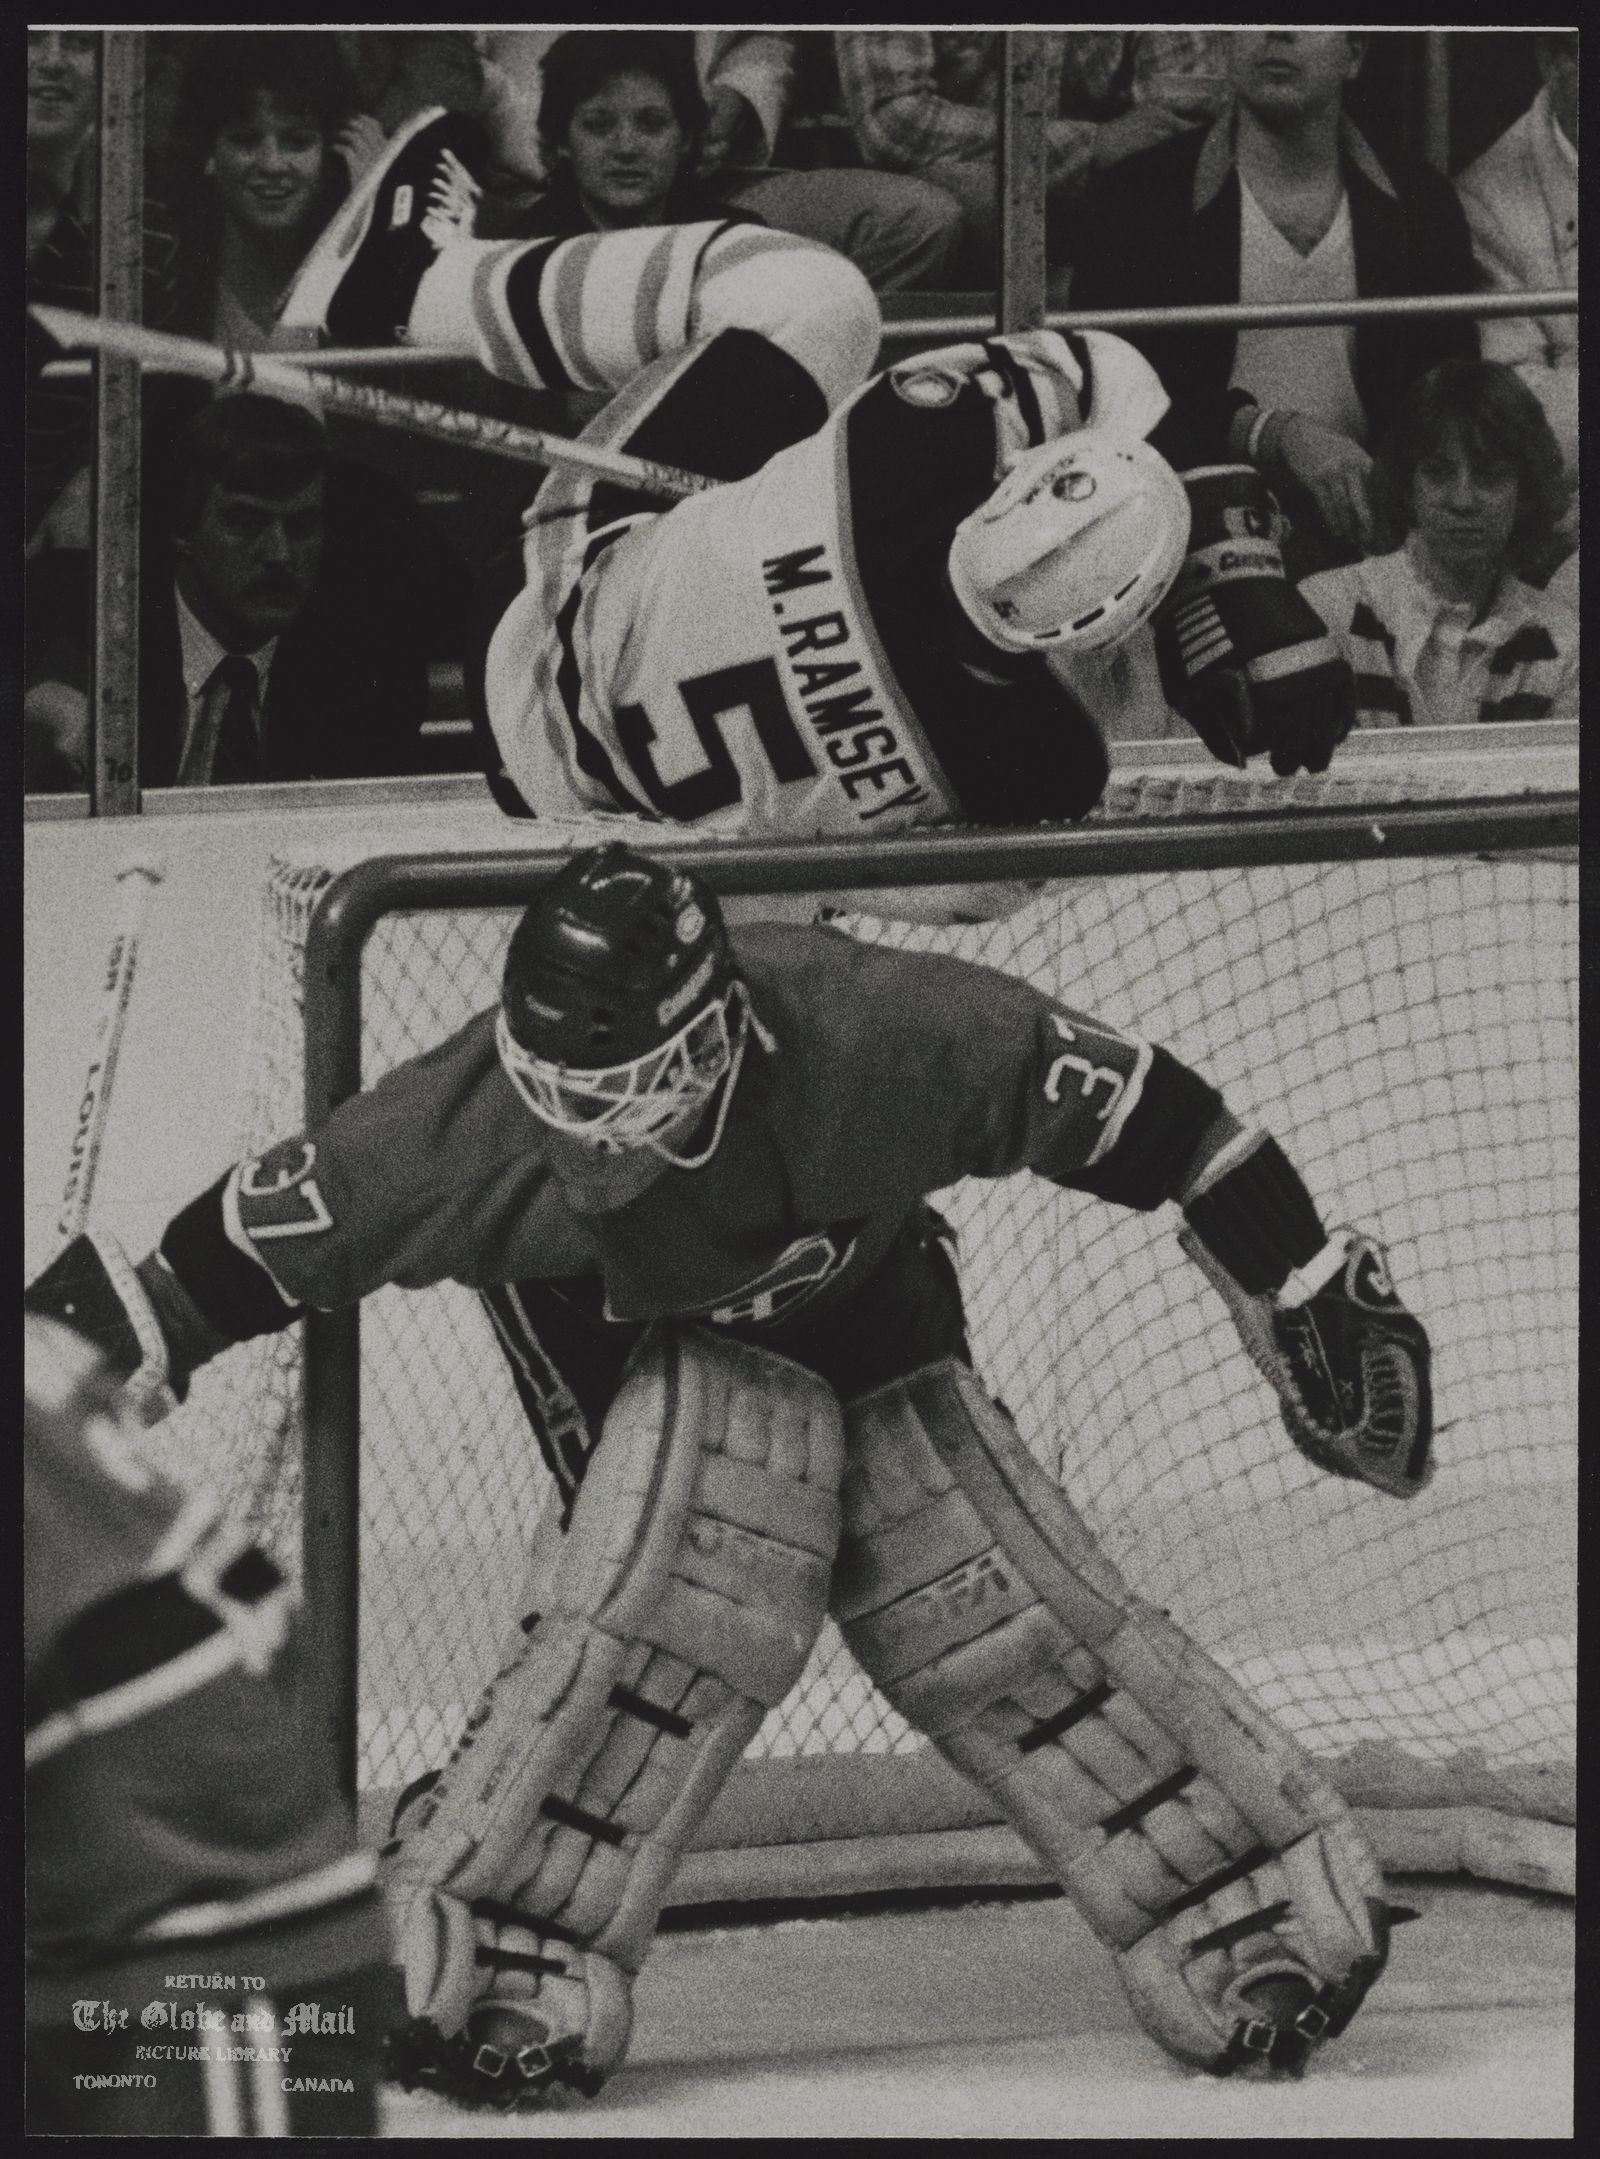 HOCKEY Sabre defenceman Mike Ramsey tumbles over Montreal net behind Hab goaltender Steve Penney during Buffalo's 4-3 season-opening victory.